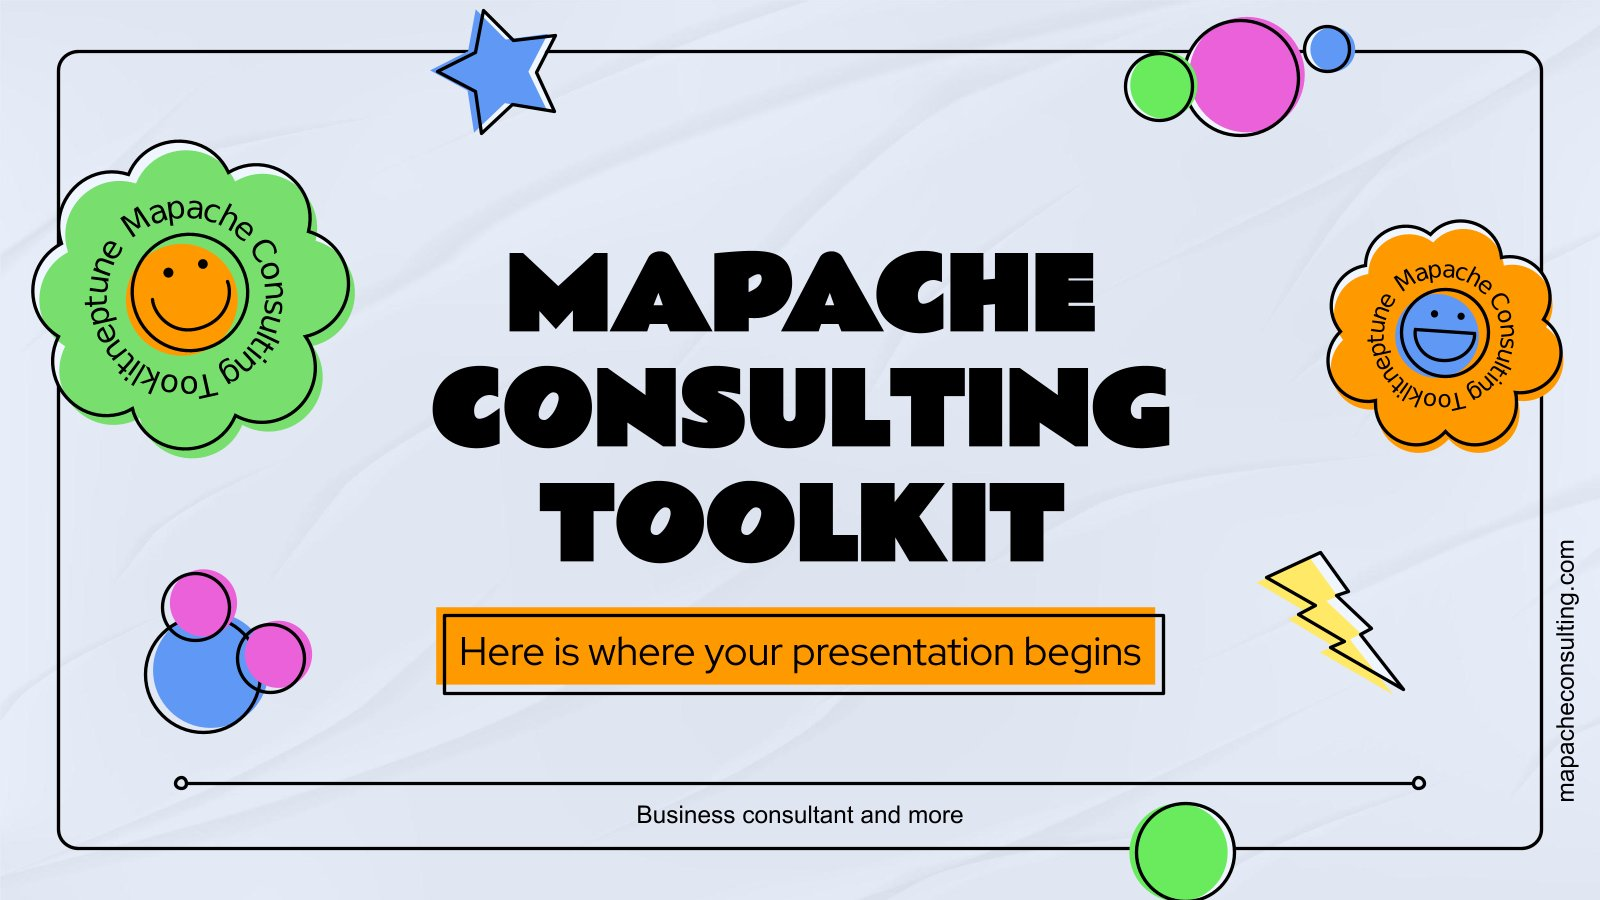 Mapache Consulting Toolkit presentation template